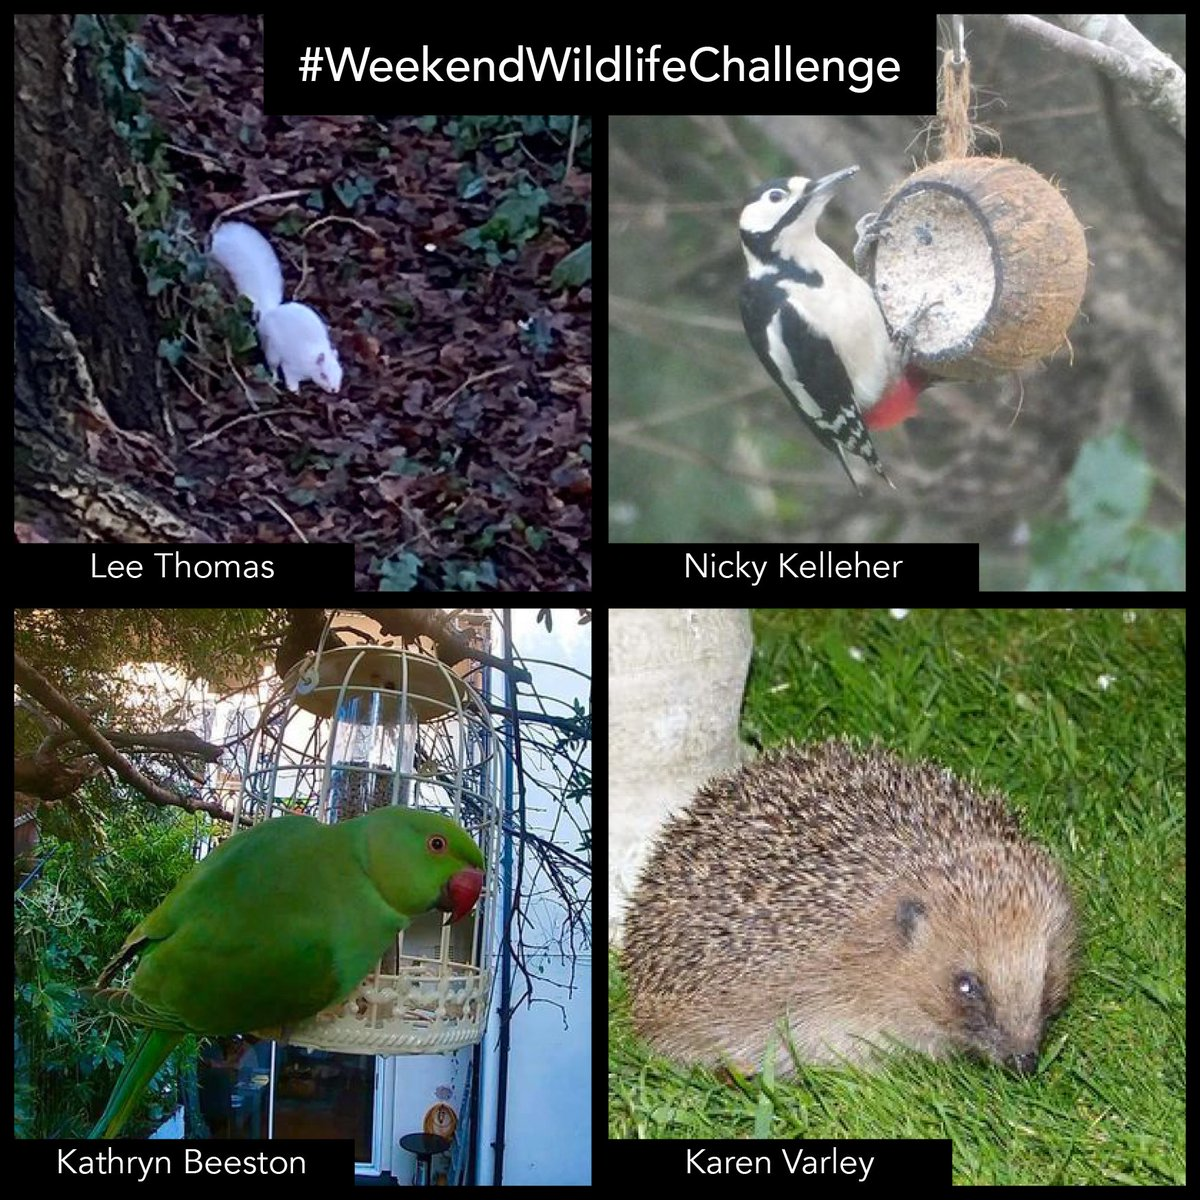 We had so many fantastic photographs posted for this weeks #weekendwildlifechallenge - well done everyone!  Here are just a few for you to see 🤩 @leechef81